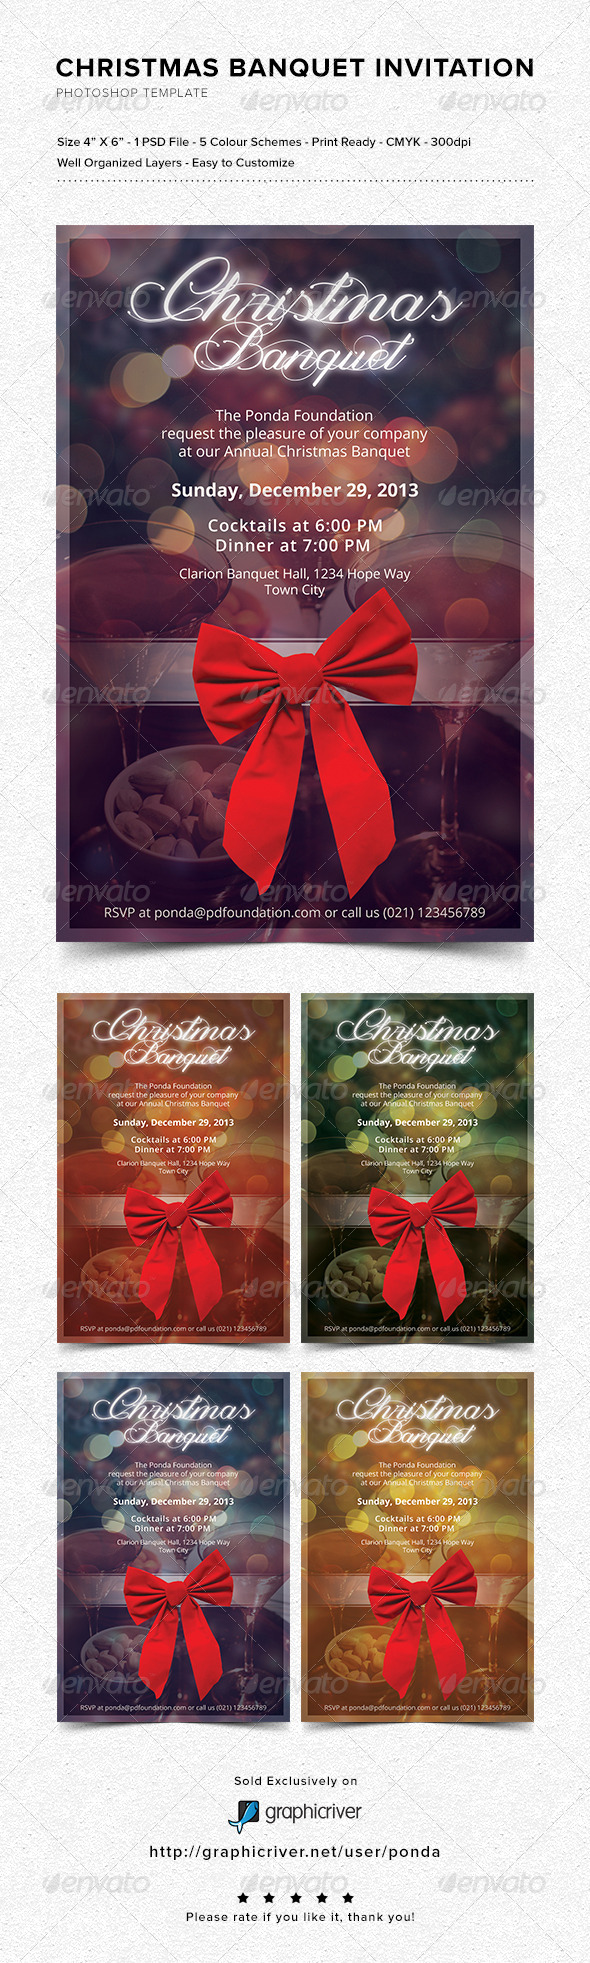 GraphicRiver Christmas Banquet Invitation 6365578